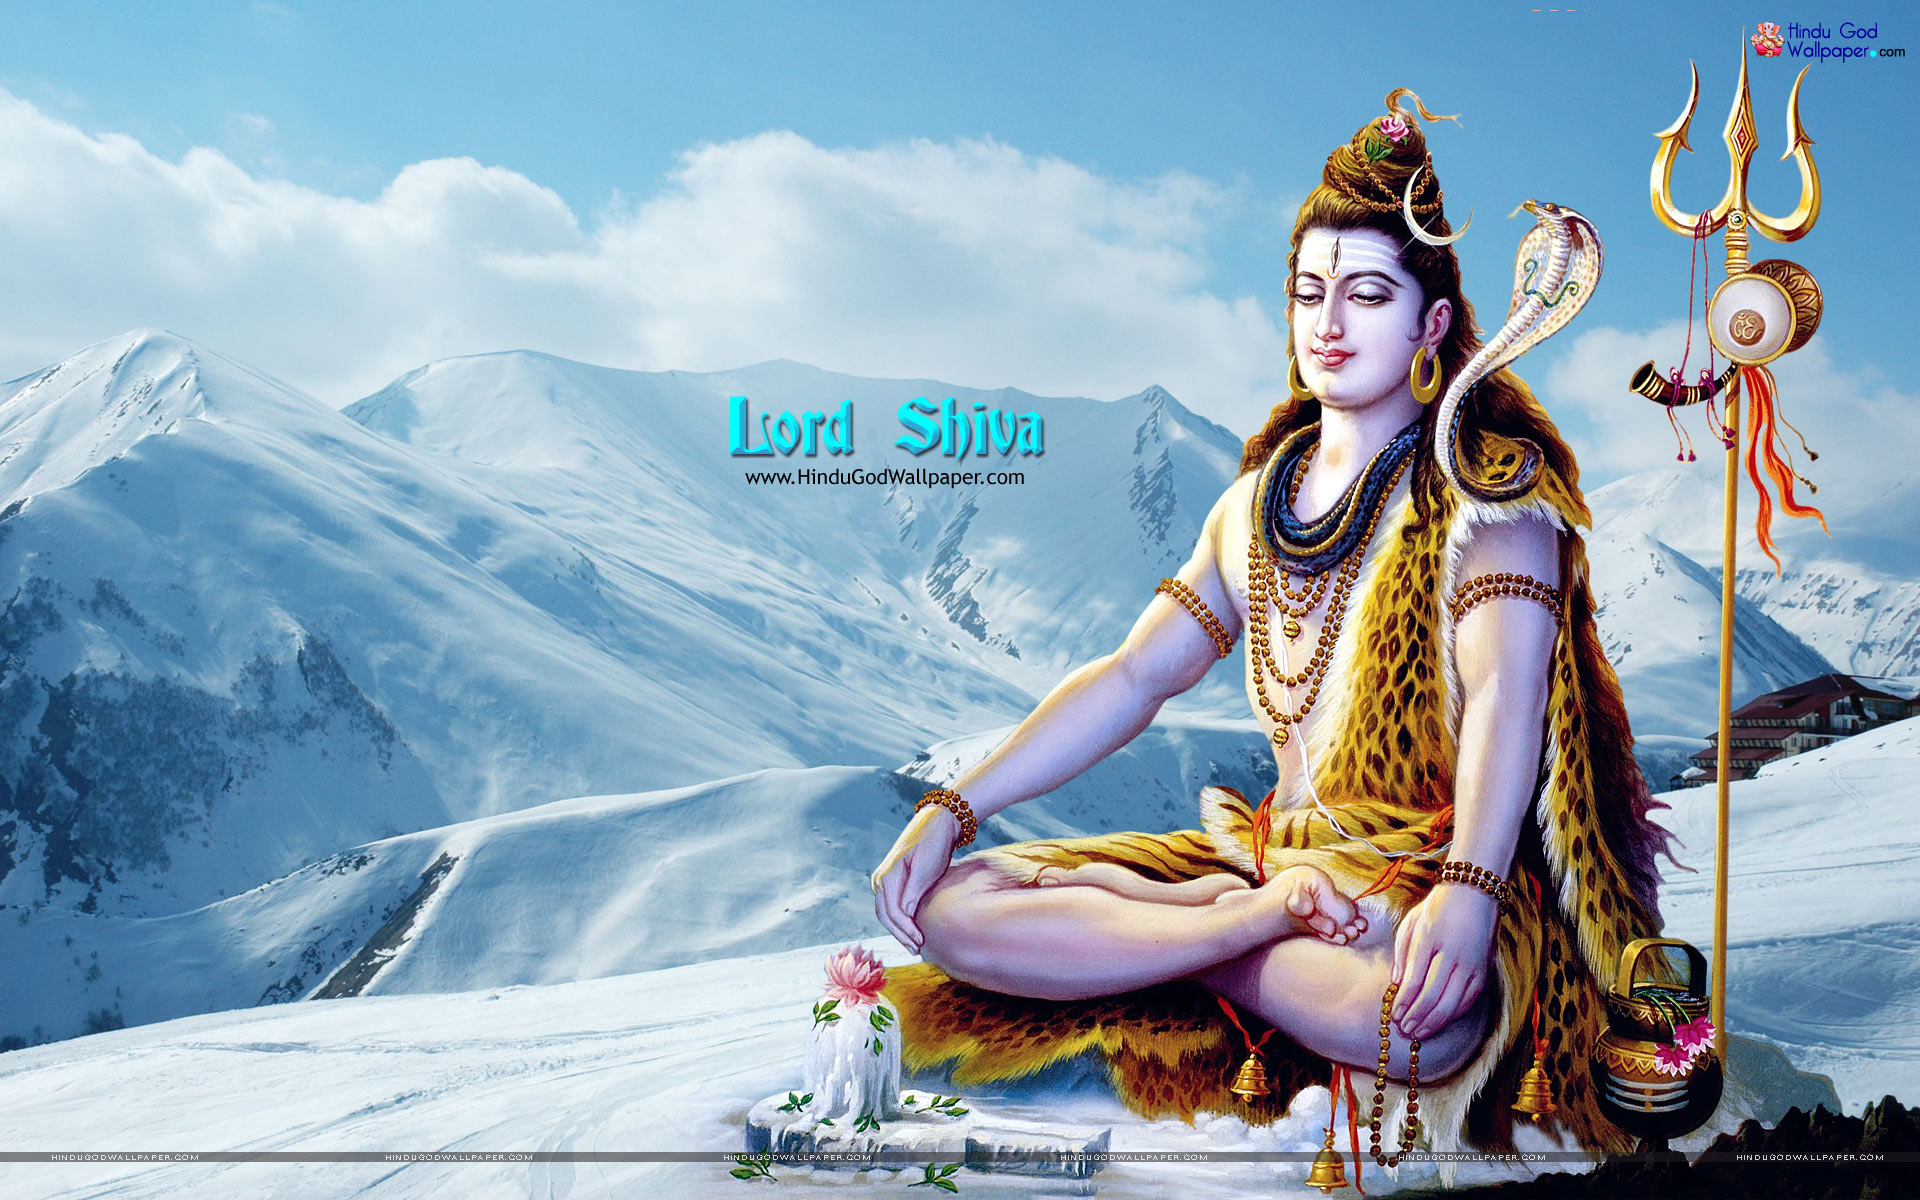 Lord Shiva Creative Hd Wallpapers For Free Download Lord: Lord Shiva Images, Lord Shiva Photos, Hindu God Shiva HD